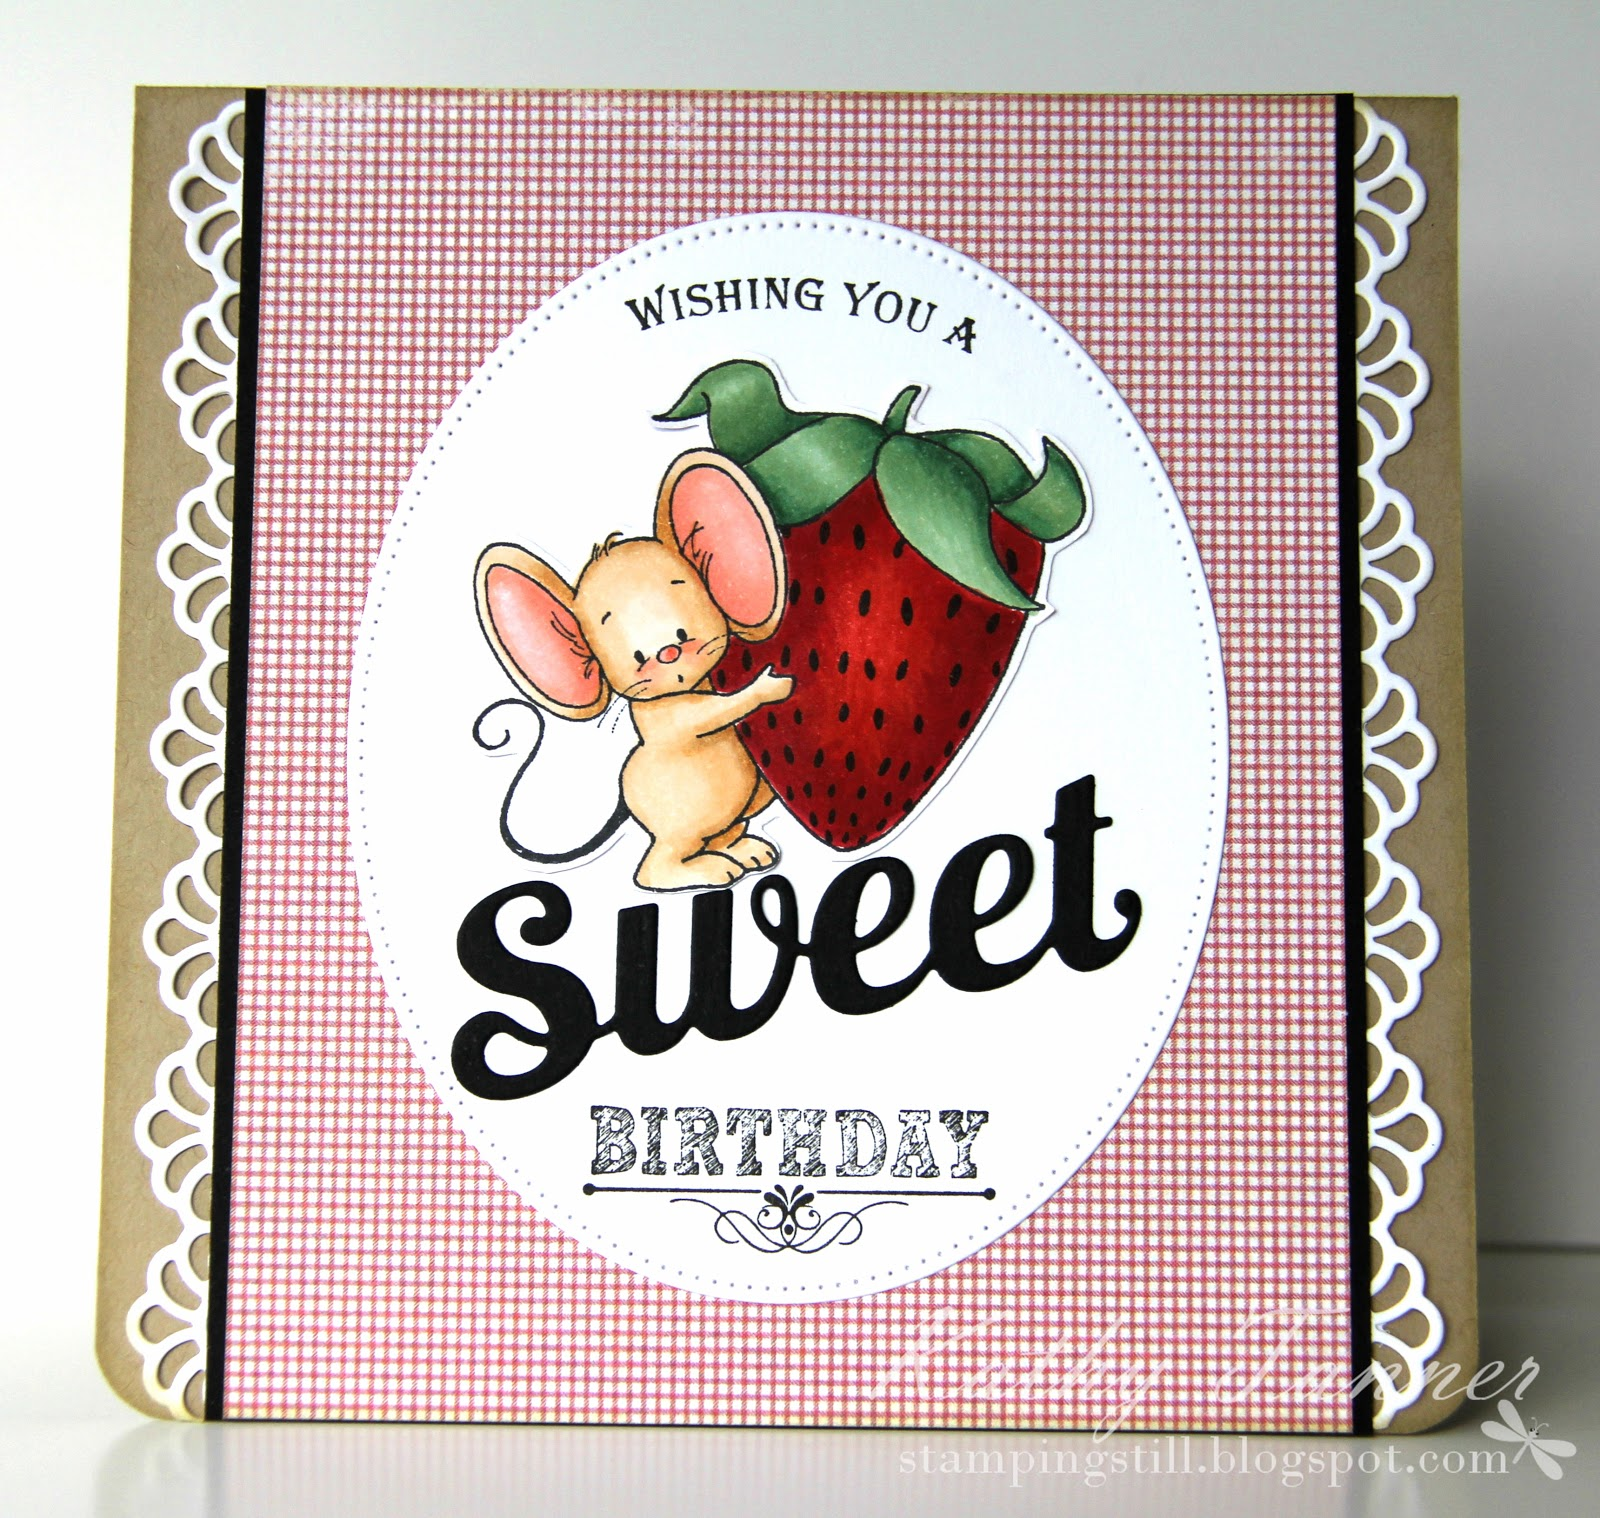 strawberry mouse, whimsy stamps, mini chalkboard, sweet die